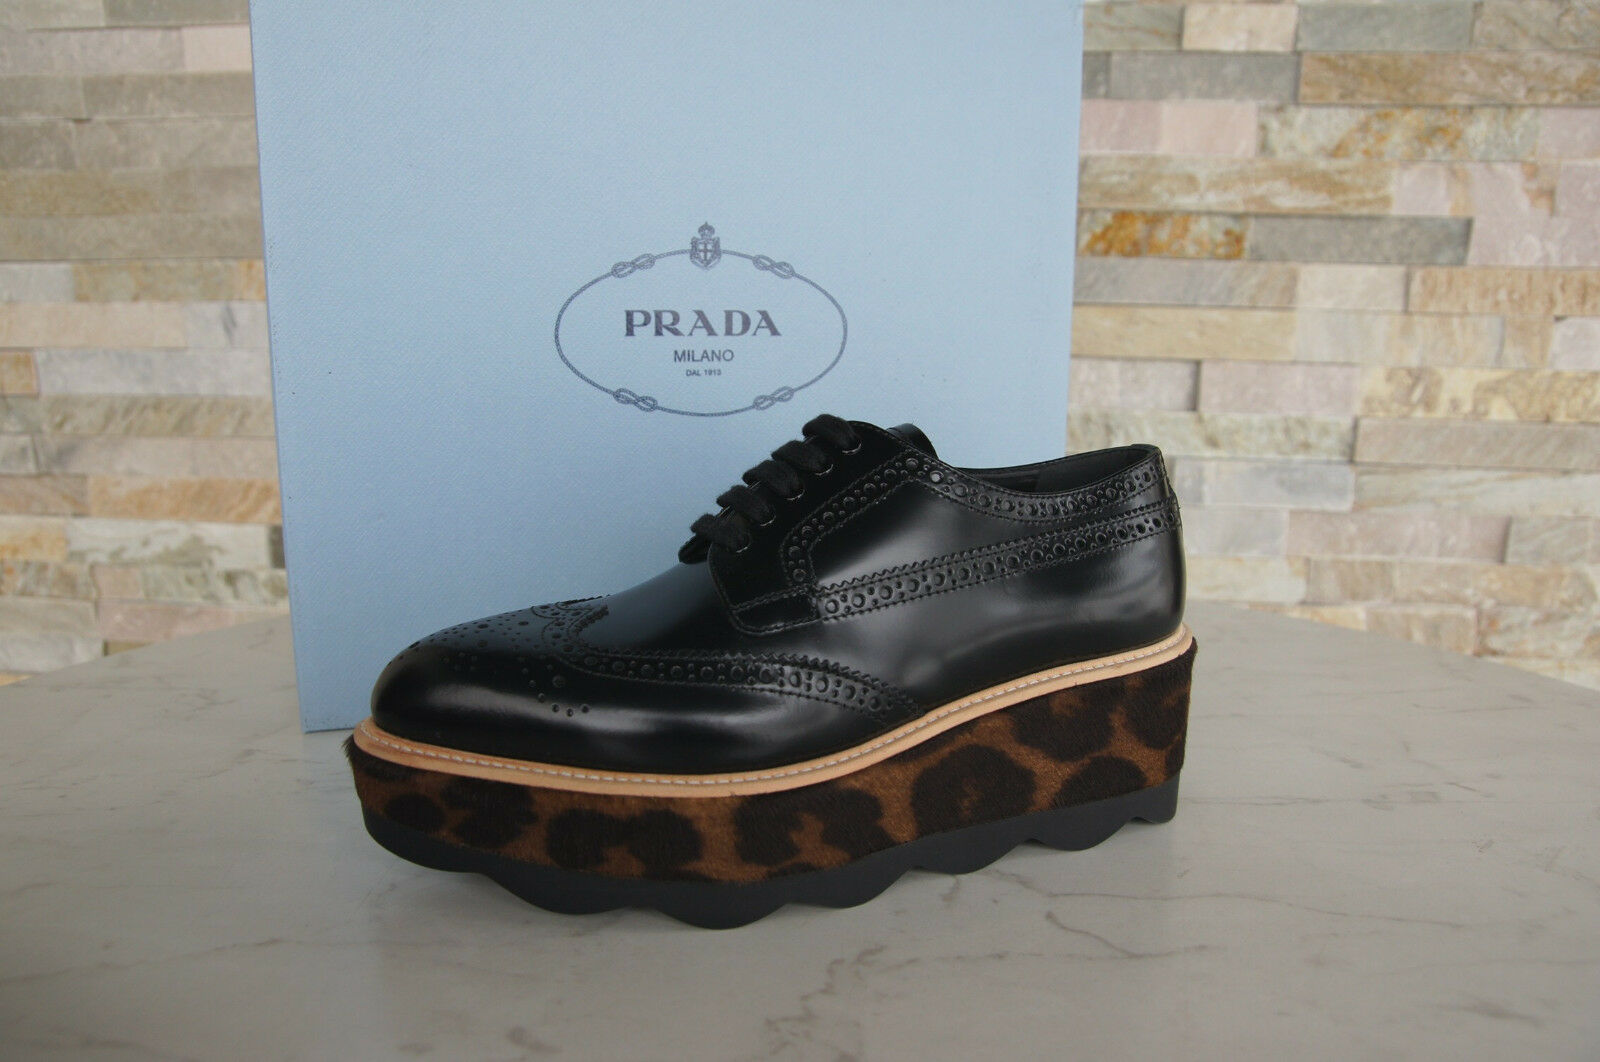 Prada Size 39 Platform Lace up 1E935G shoes Leopard Black New Formerly Rrp